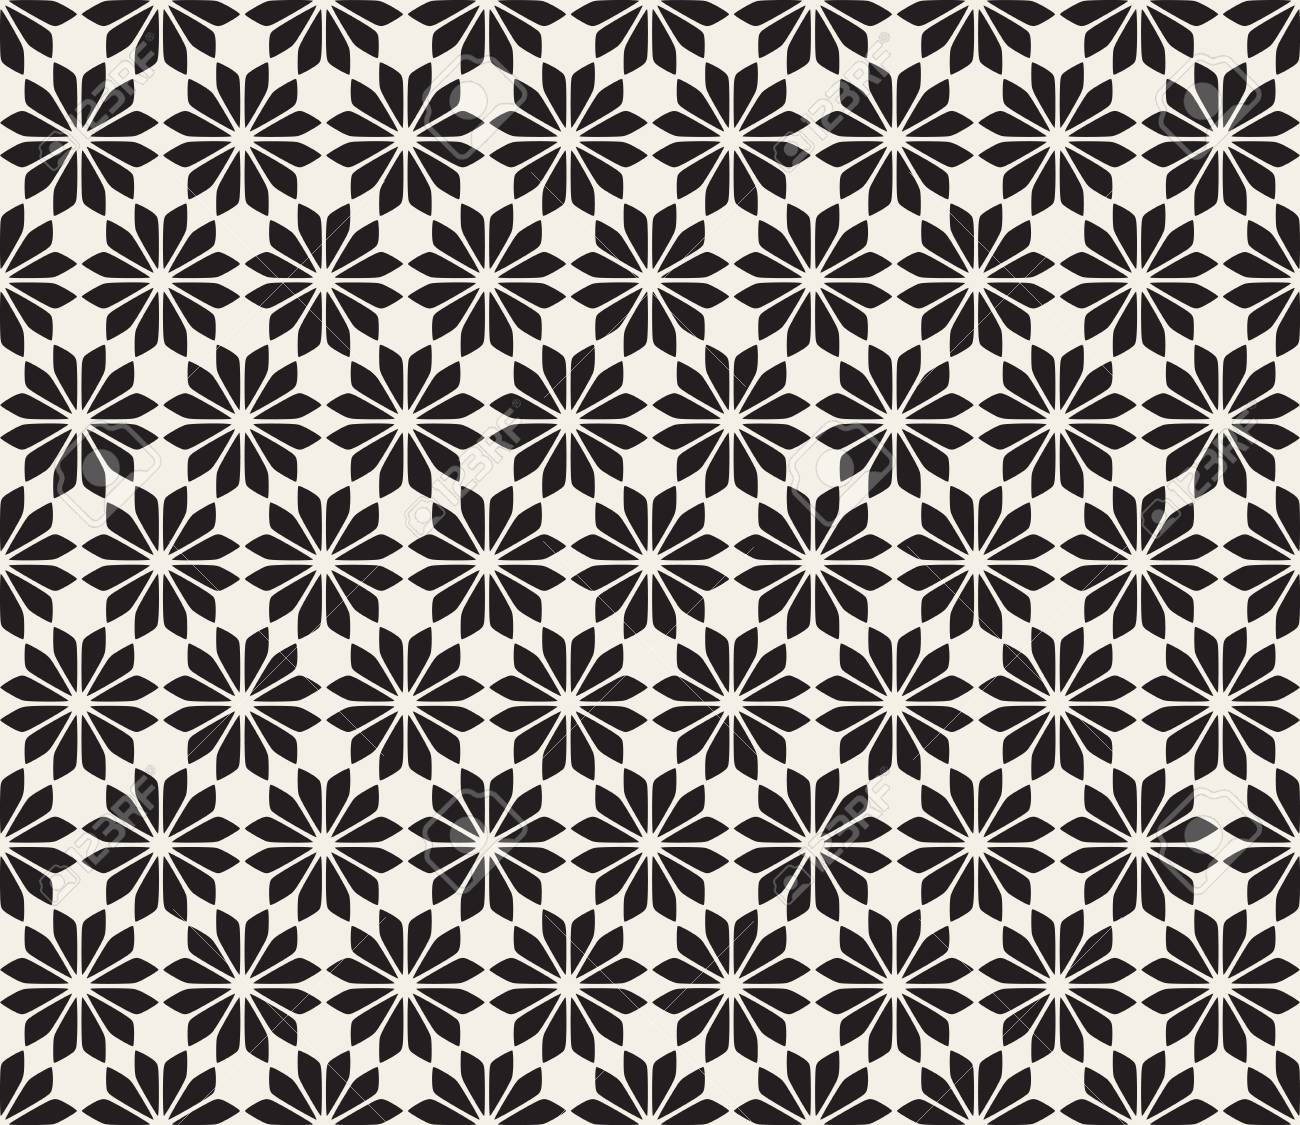 Vector Seamless Black And White Floral Pattern Abstract Geometric